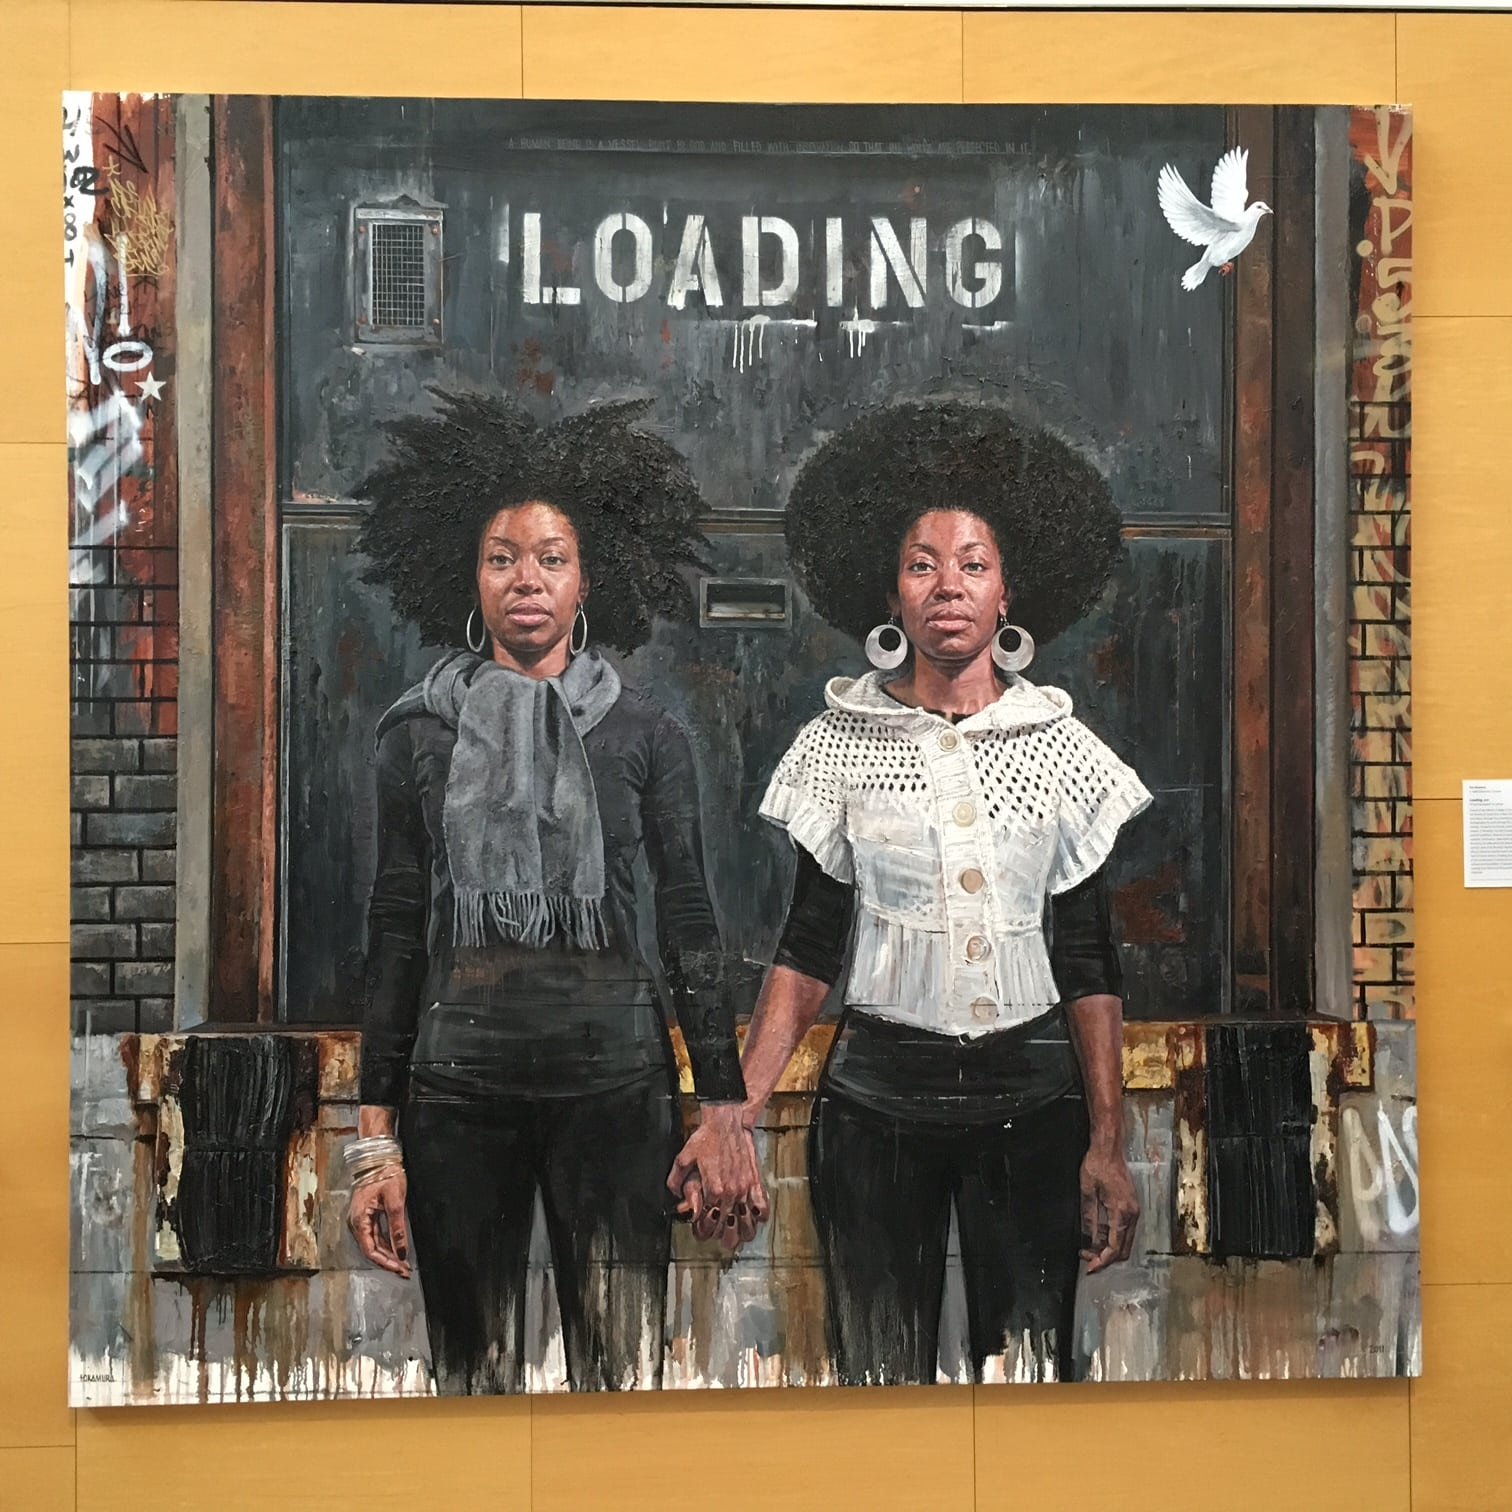 Loading was artist Tim Okamura's first painting to enter a museum collection. Like many of the works in the museum, it's been moved, but not for the better to my eye. The women used to appear larger than life and absolutely demanded attention in their previous spot. Now, on a stairway landing, they just don't grab me as forcefully.